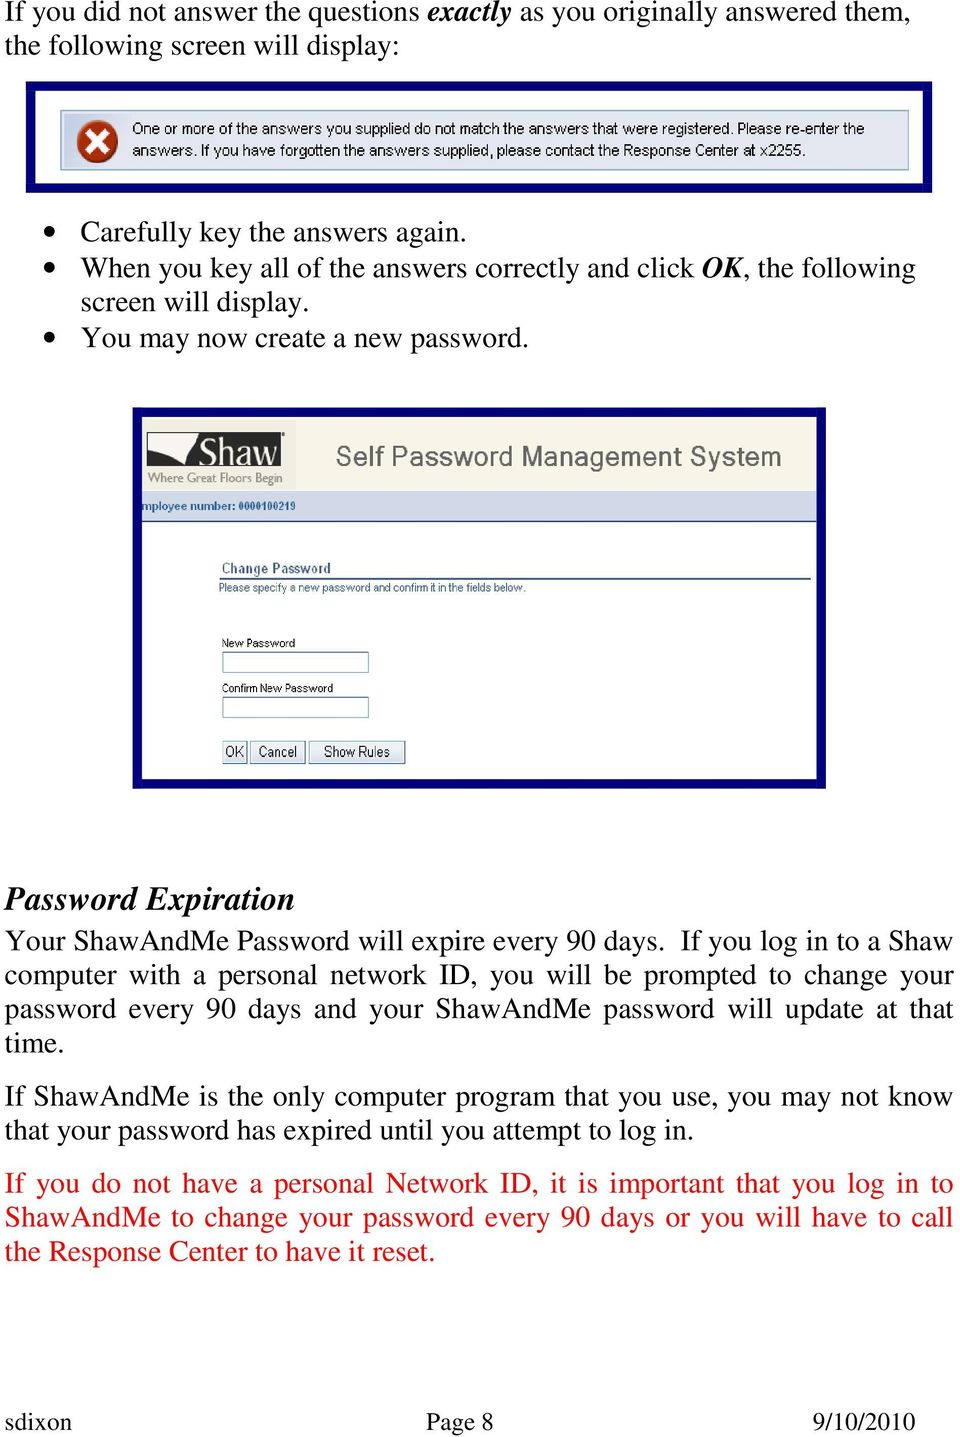 If you log in to a Shaw computer with a personal network ID, you will be prompted to change your password every 90 days and your ShawAndMe password will update at that time.